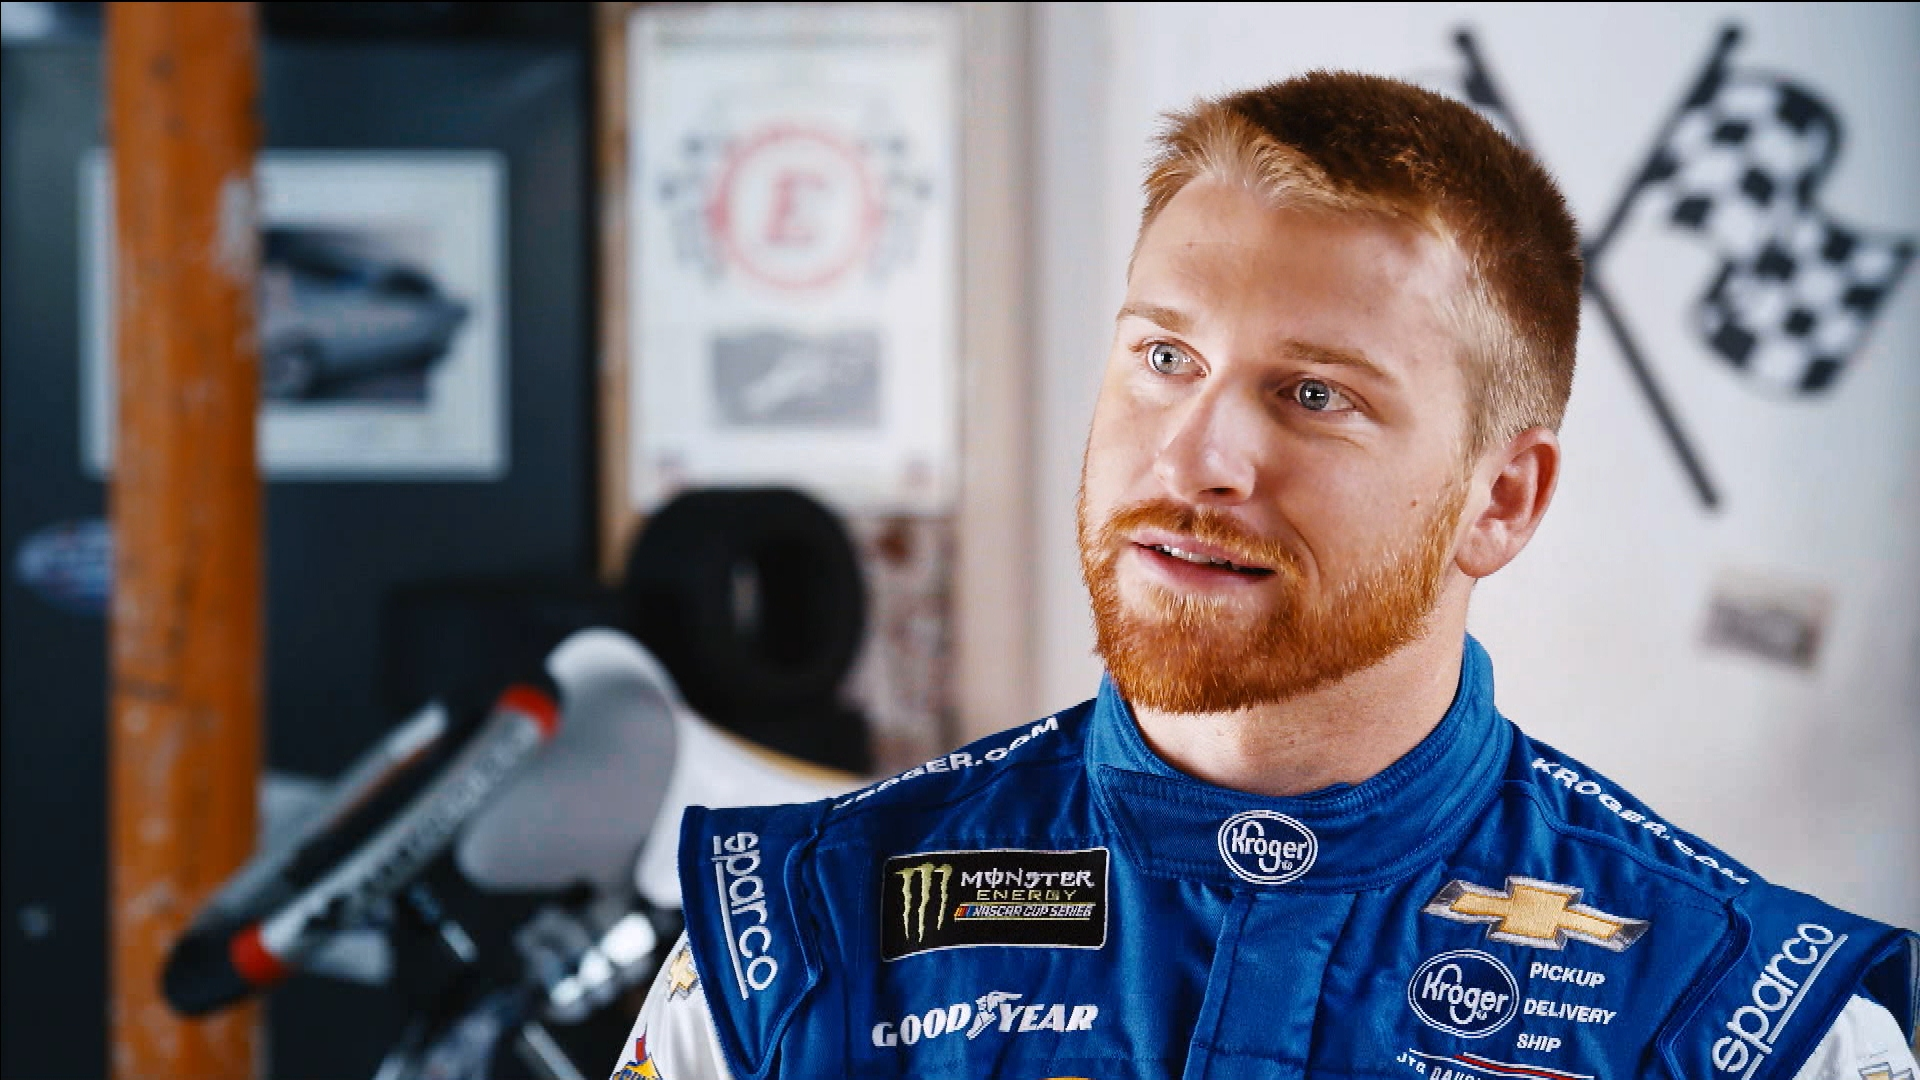 NASCAR Grassroots Racing Tour: Chris Buescher grows up racing in Texas